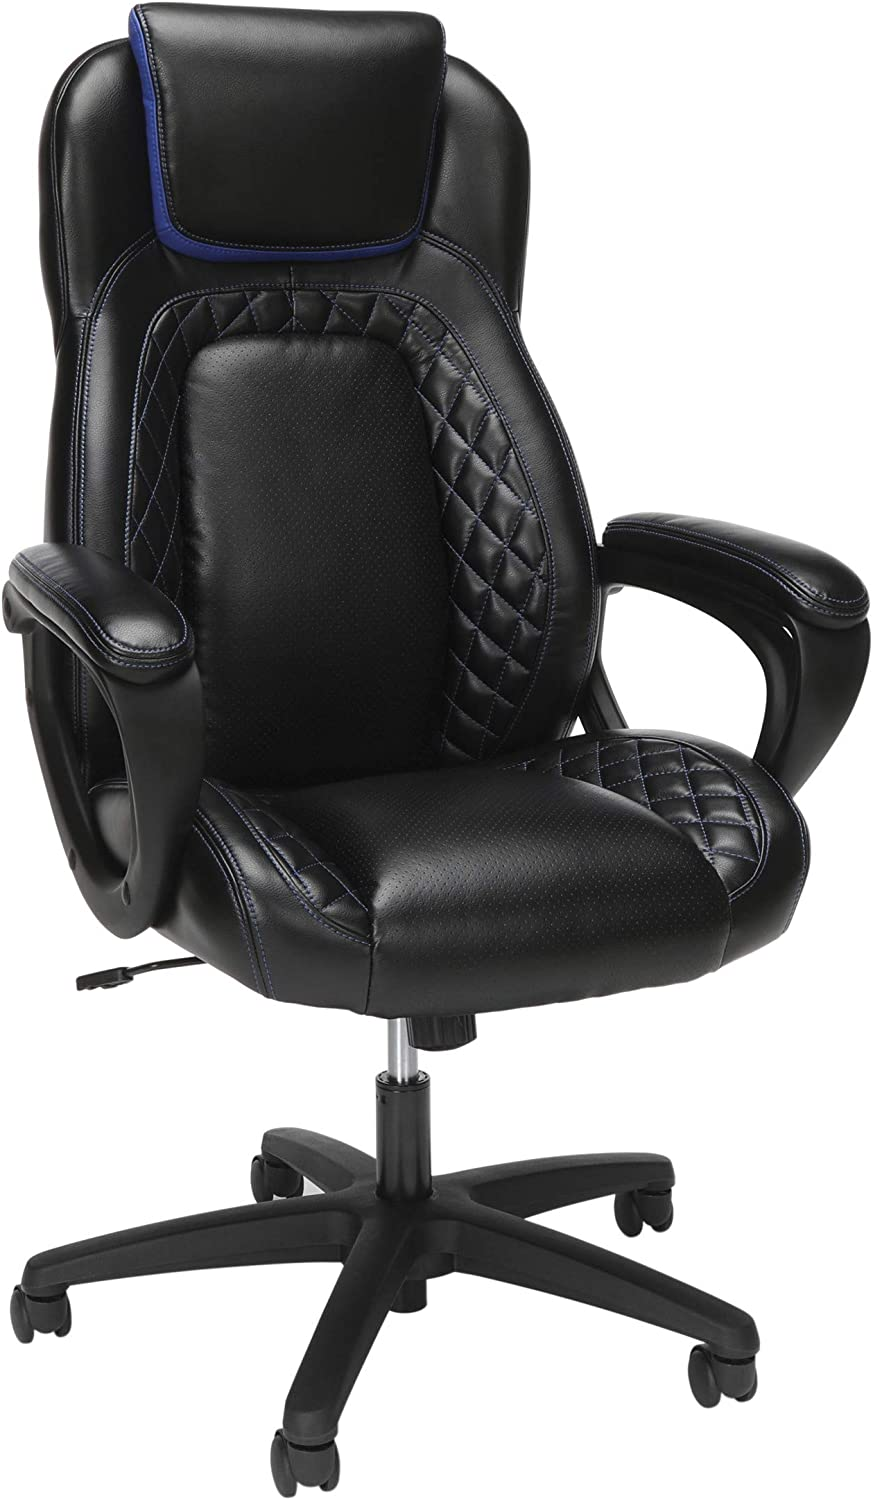 OFM Essentials Collection Racing Style SofThread Leather High Back Office Chair, in Blue (ESS-6060-BLU)